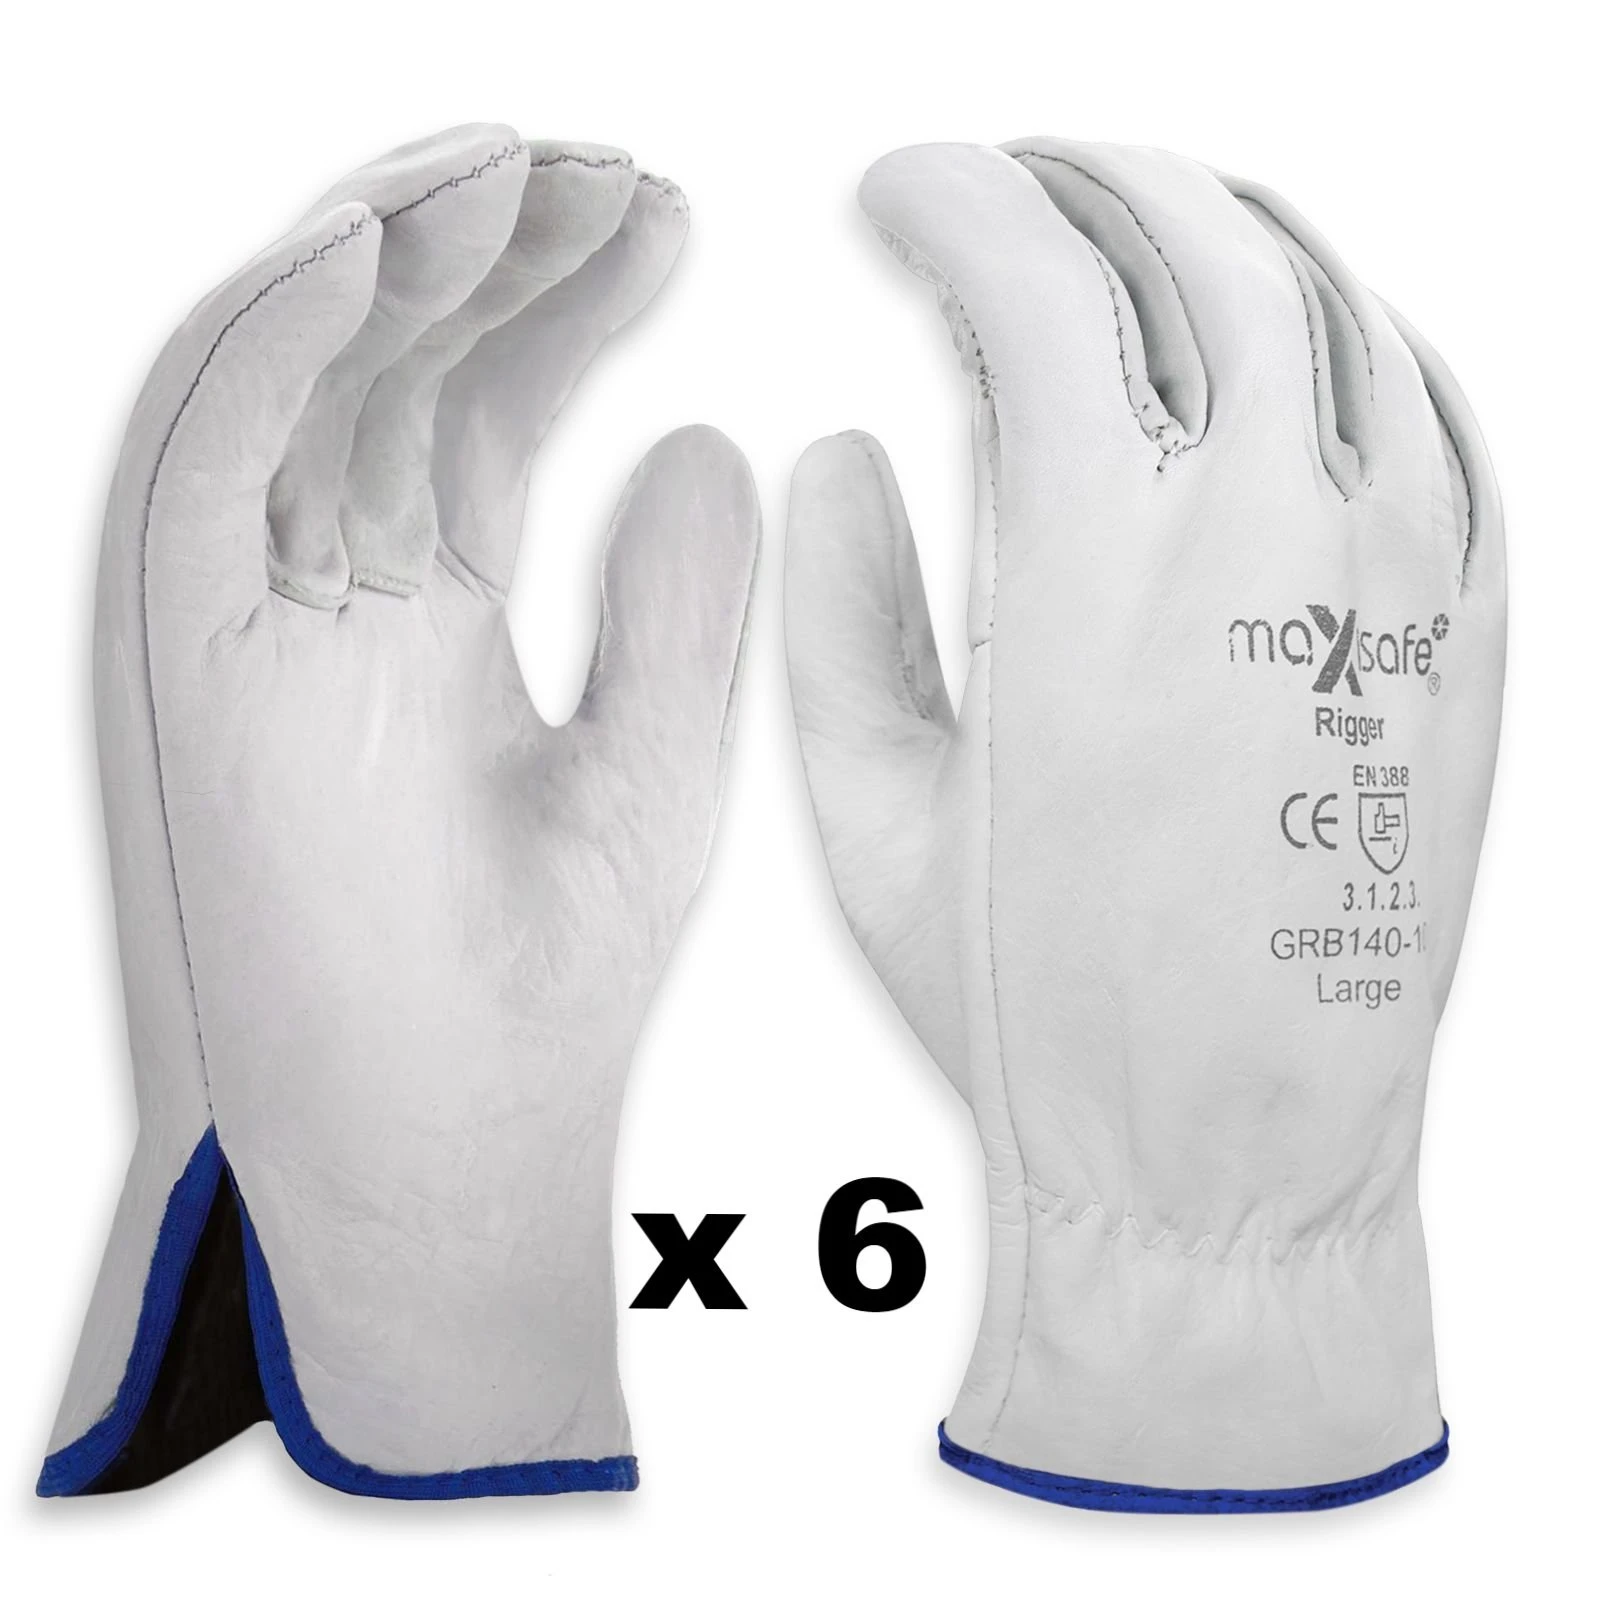 MAXISAFE PREMIUM COWGRAIN LEATHER BEIGE RIGGER'S GLOVES LARGE